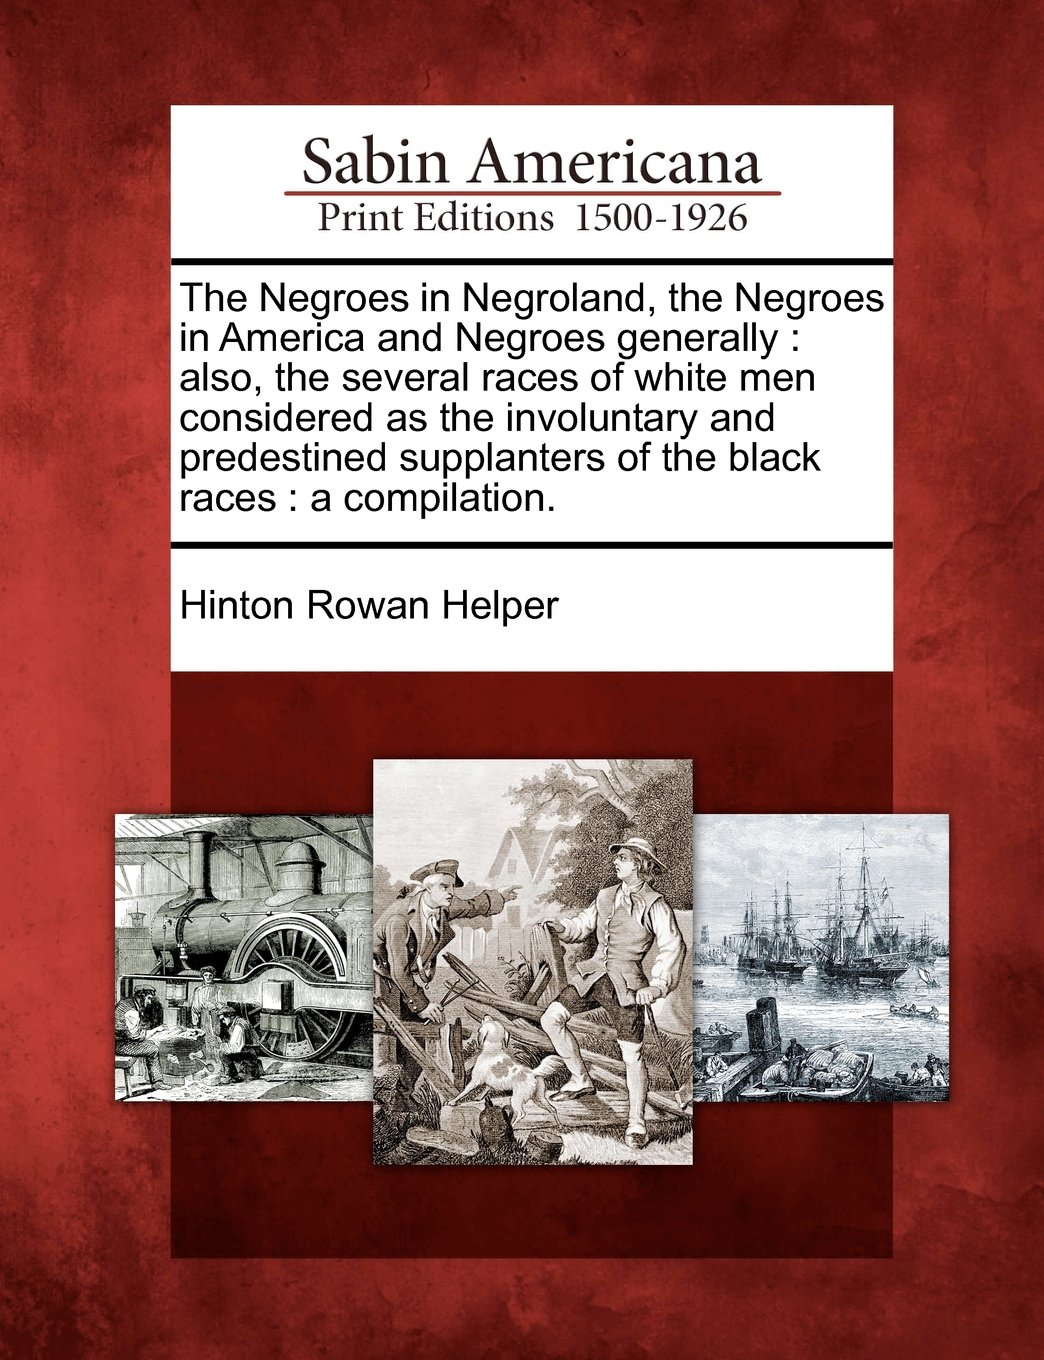 Read Online The Negroes in Negroland, the Negroes in America and Negroes generally: also, the several races of white men considered as the involuntary and ... of the black races : a compilation. pdf